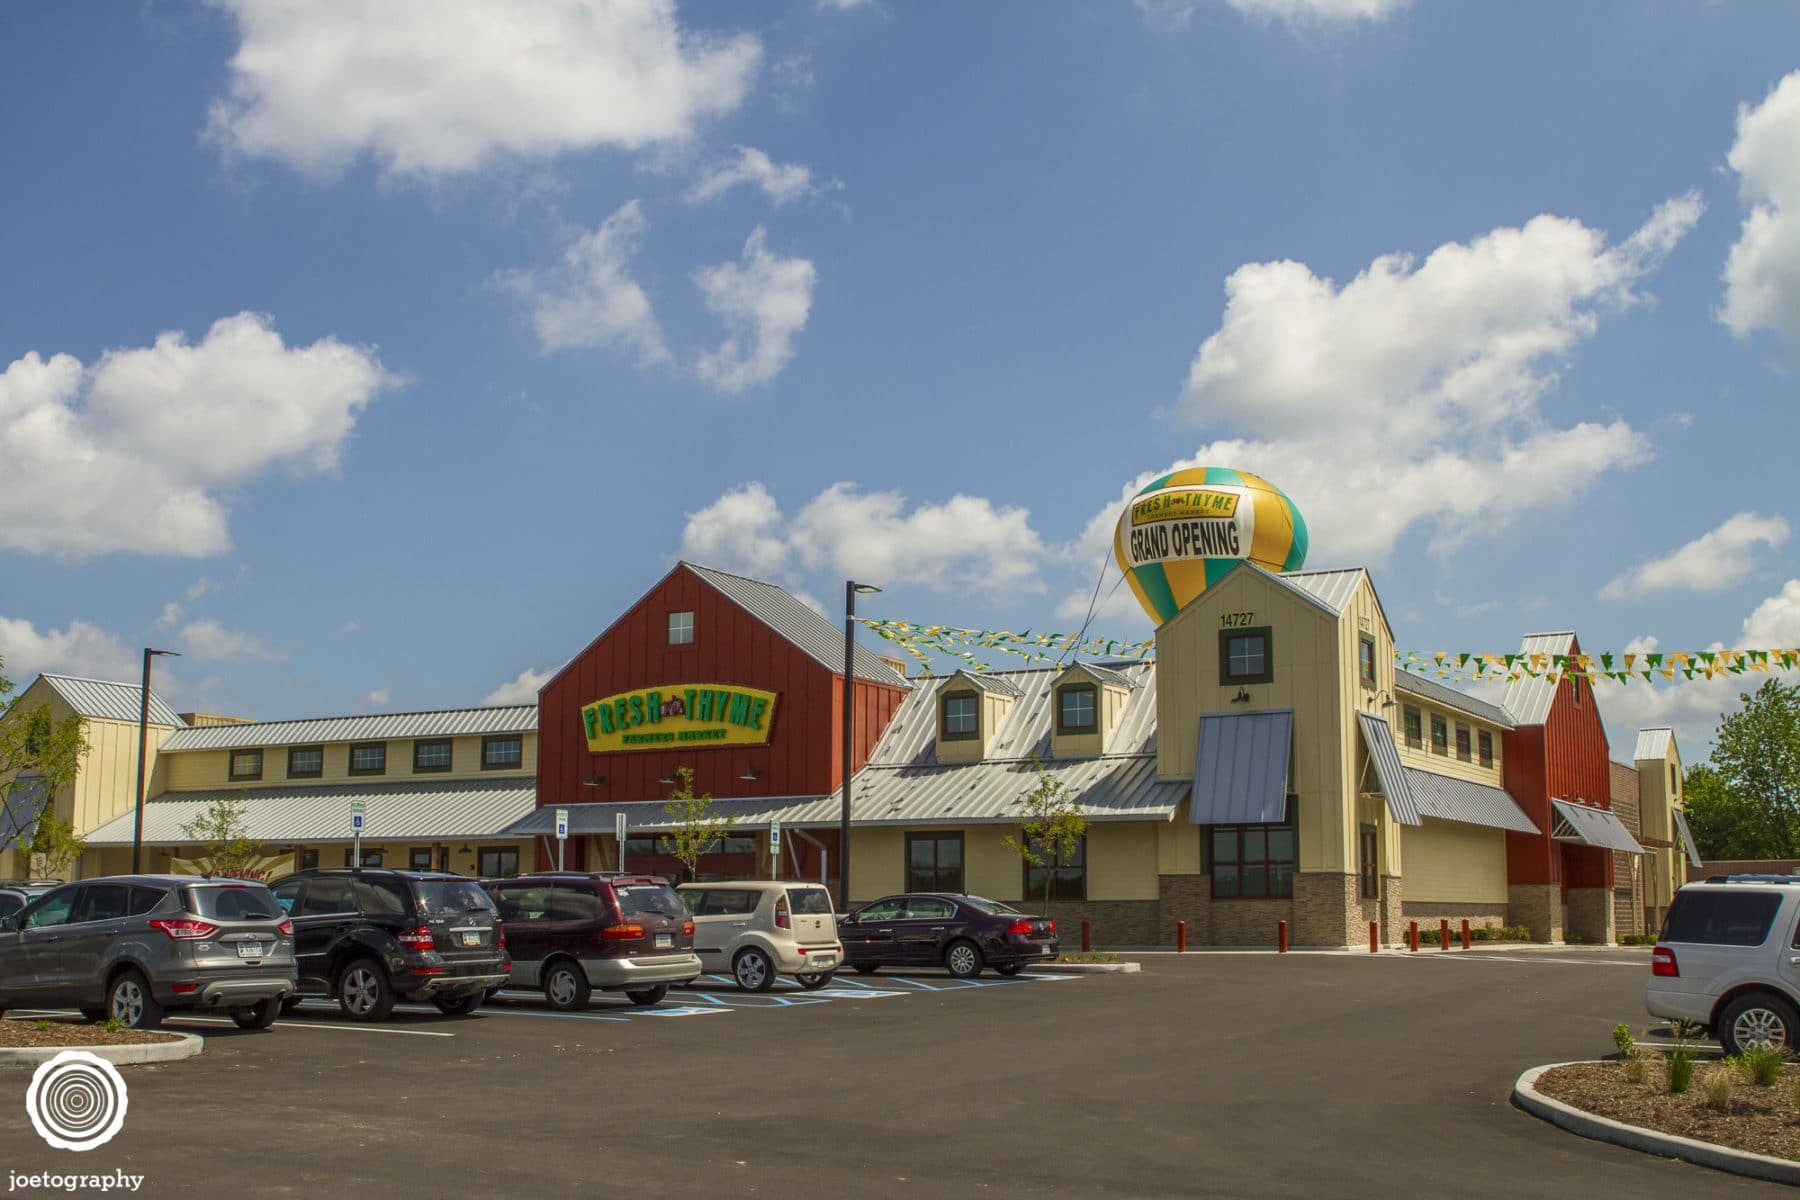 lauth-fresh-thyme-architecture-photography-fishers-westfield-indiana-33